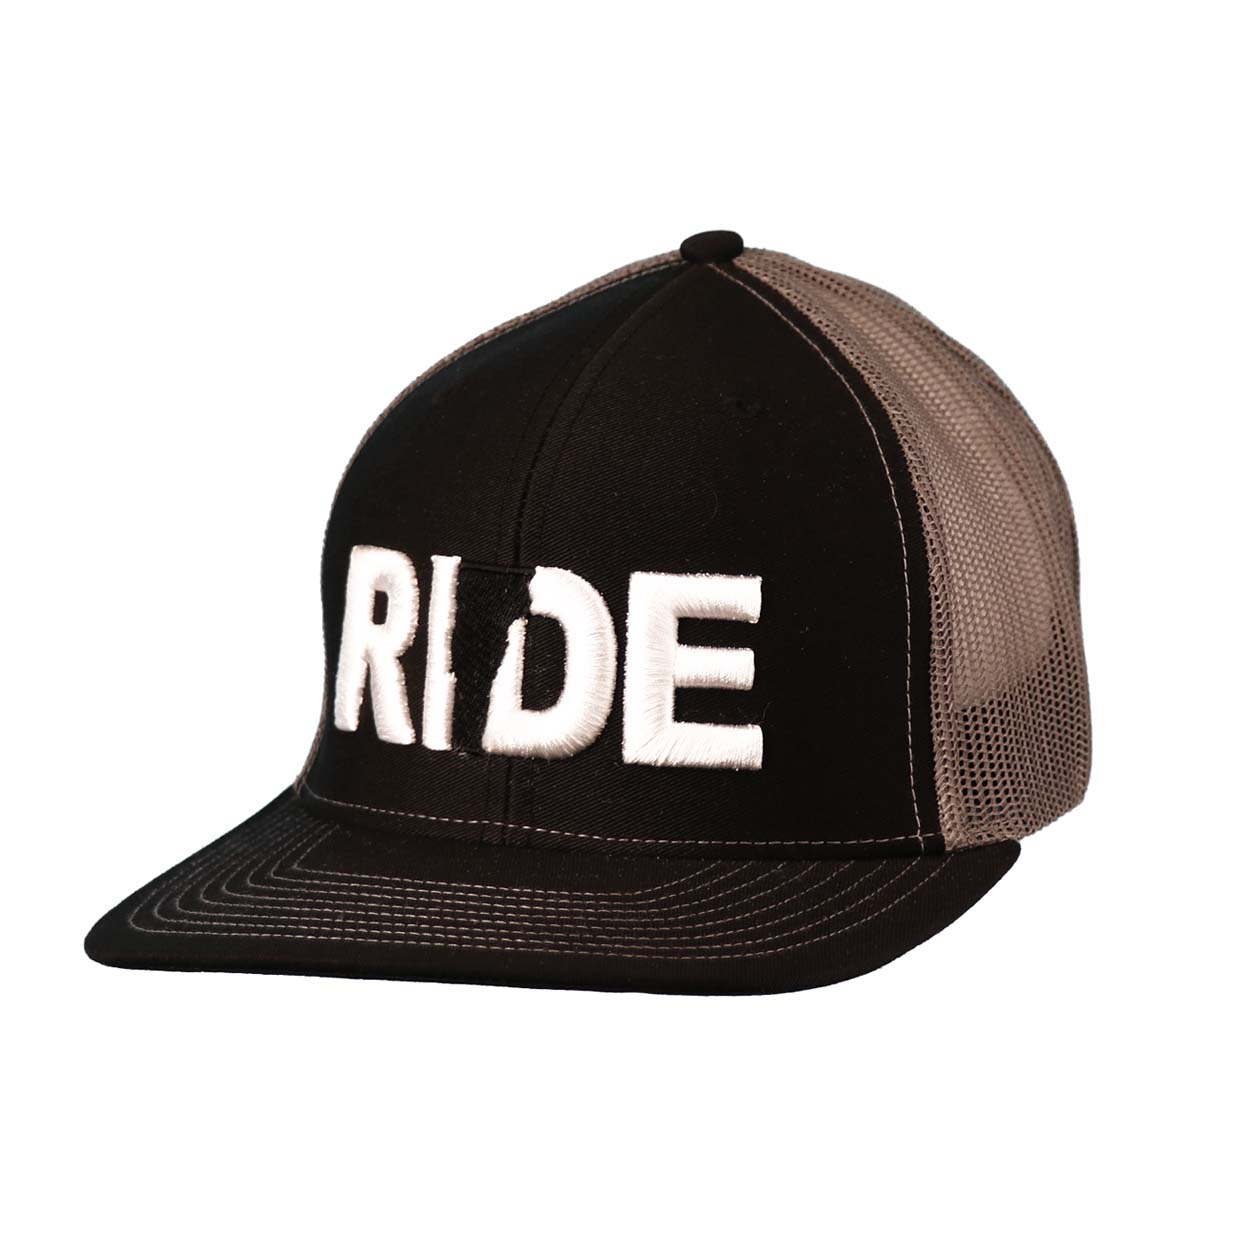 Ride Vermont Classic Embroidered Snapback Trucker Hat Black/White